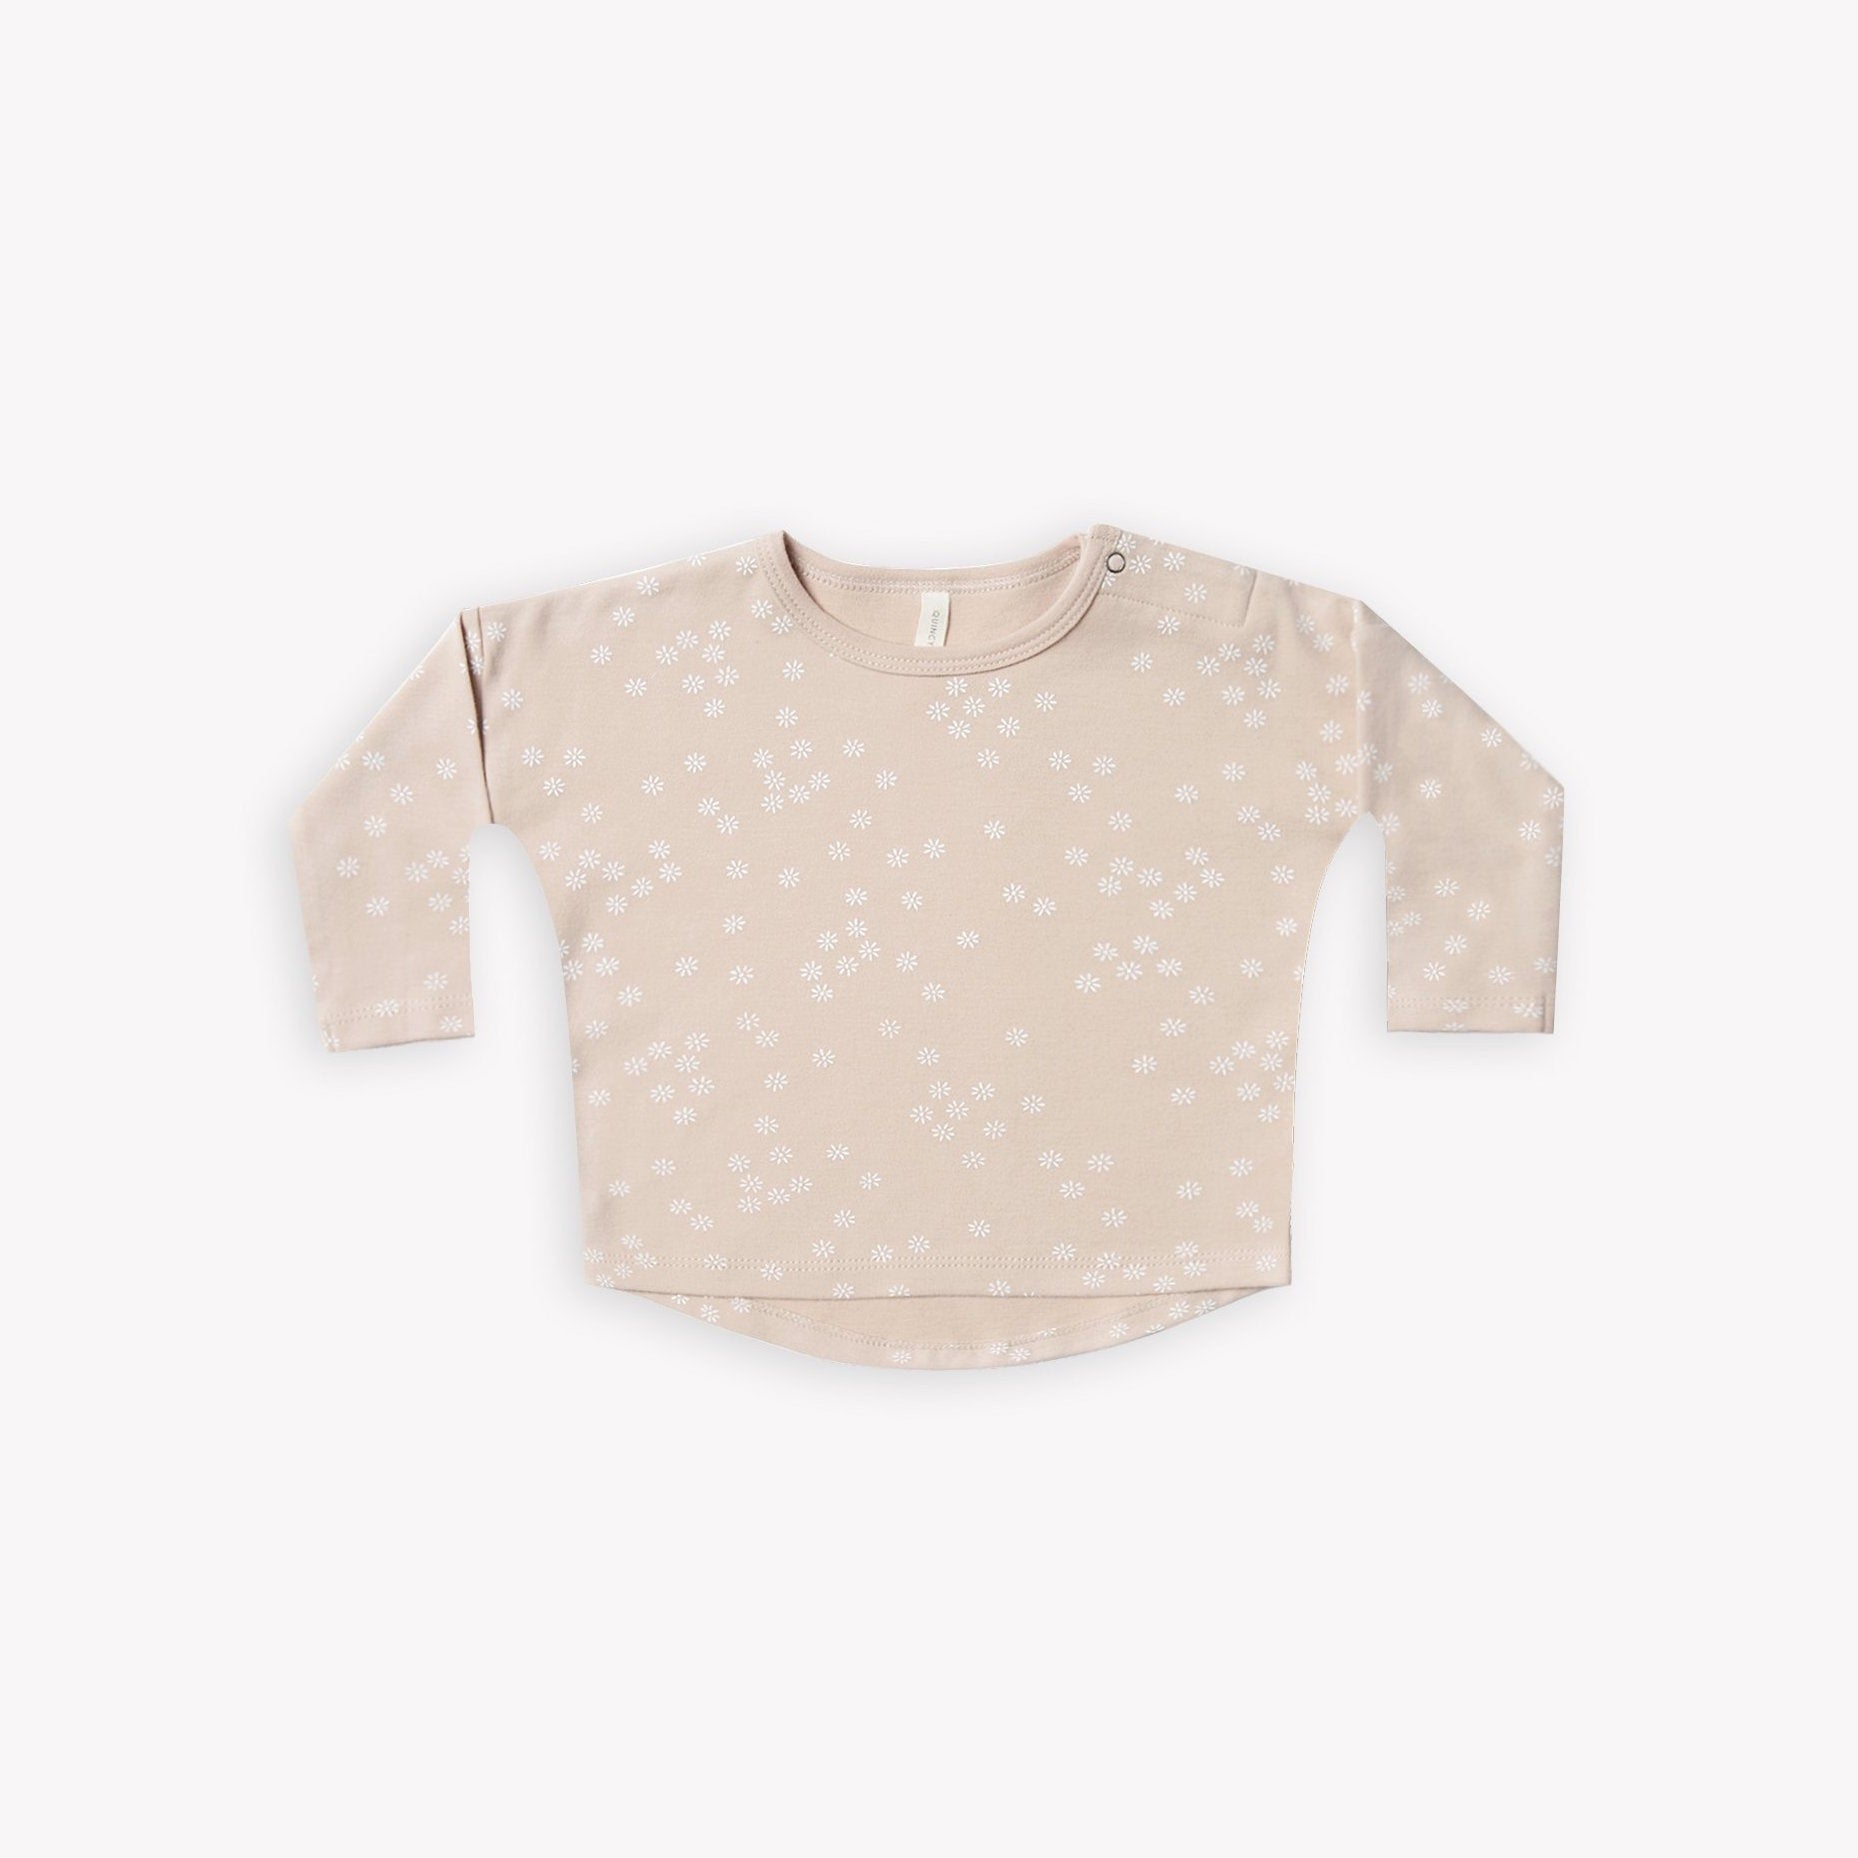 Quincy Mae organic long sleeve baby tee - rose with flora print